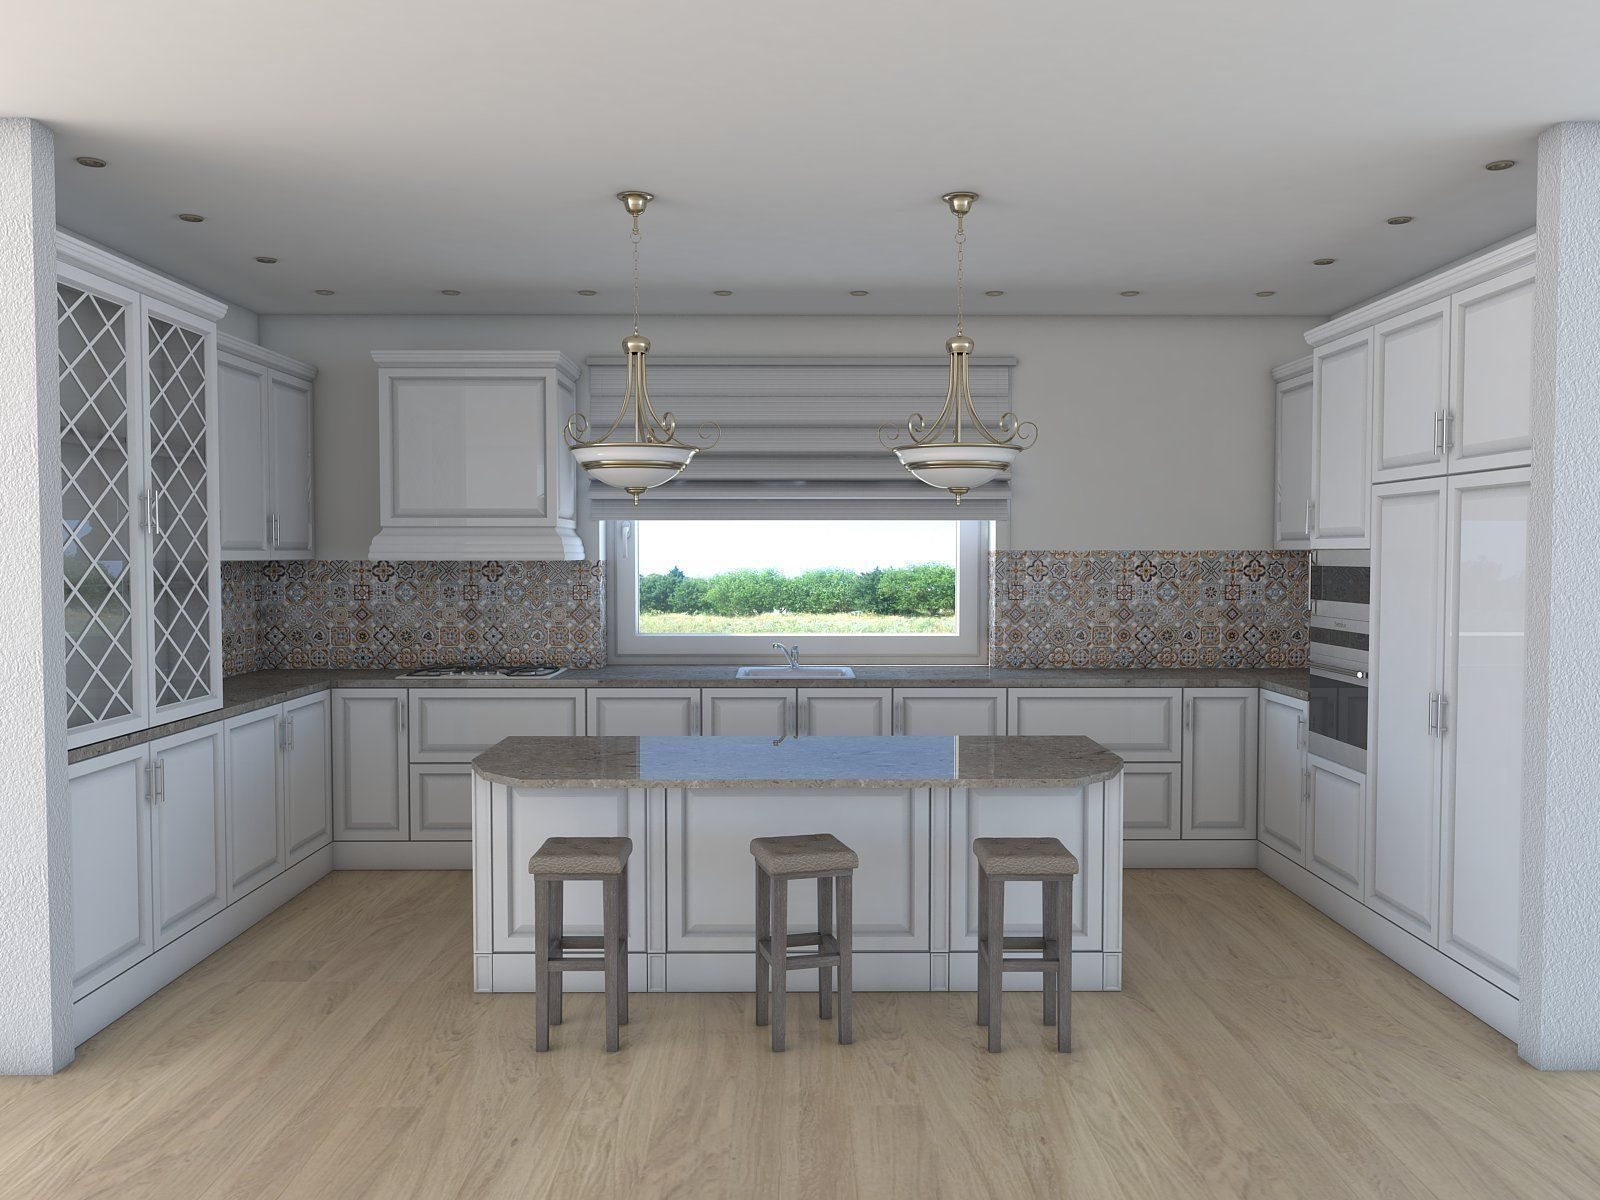 Kitchen 3D Model Kitchen Architectural 3D  Cgtrader